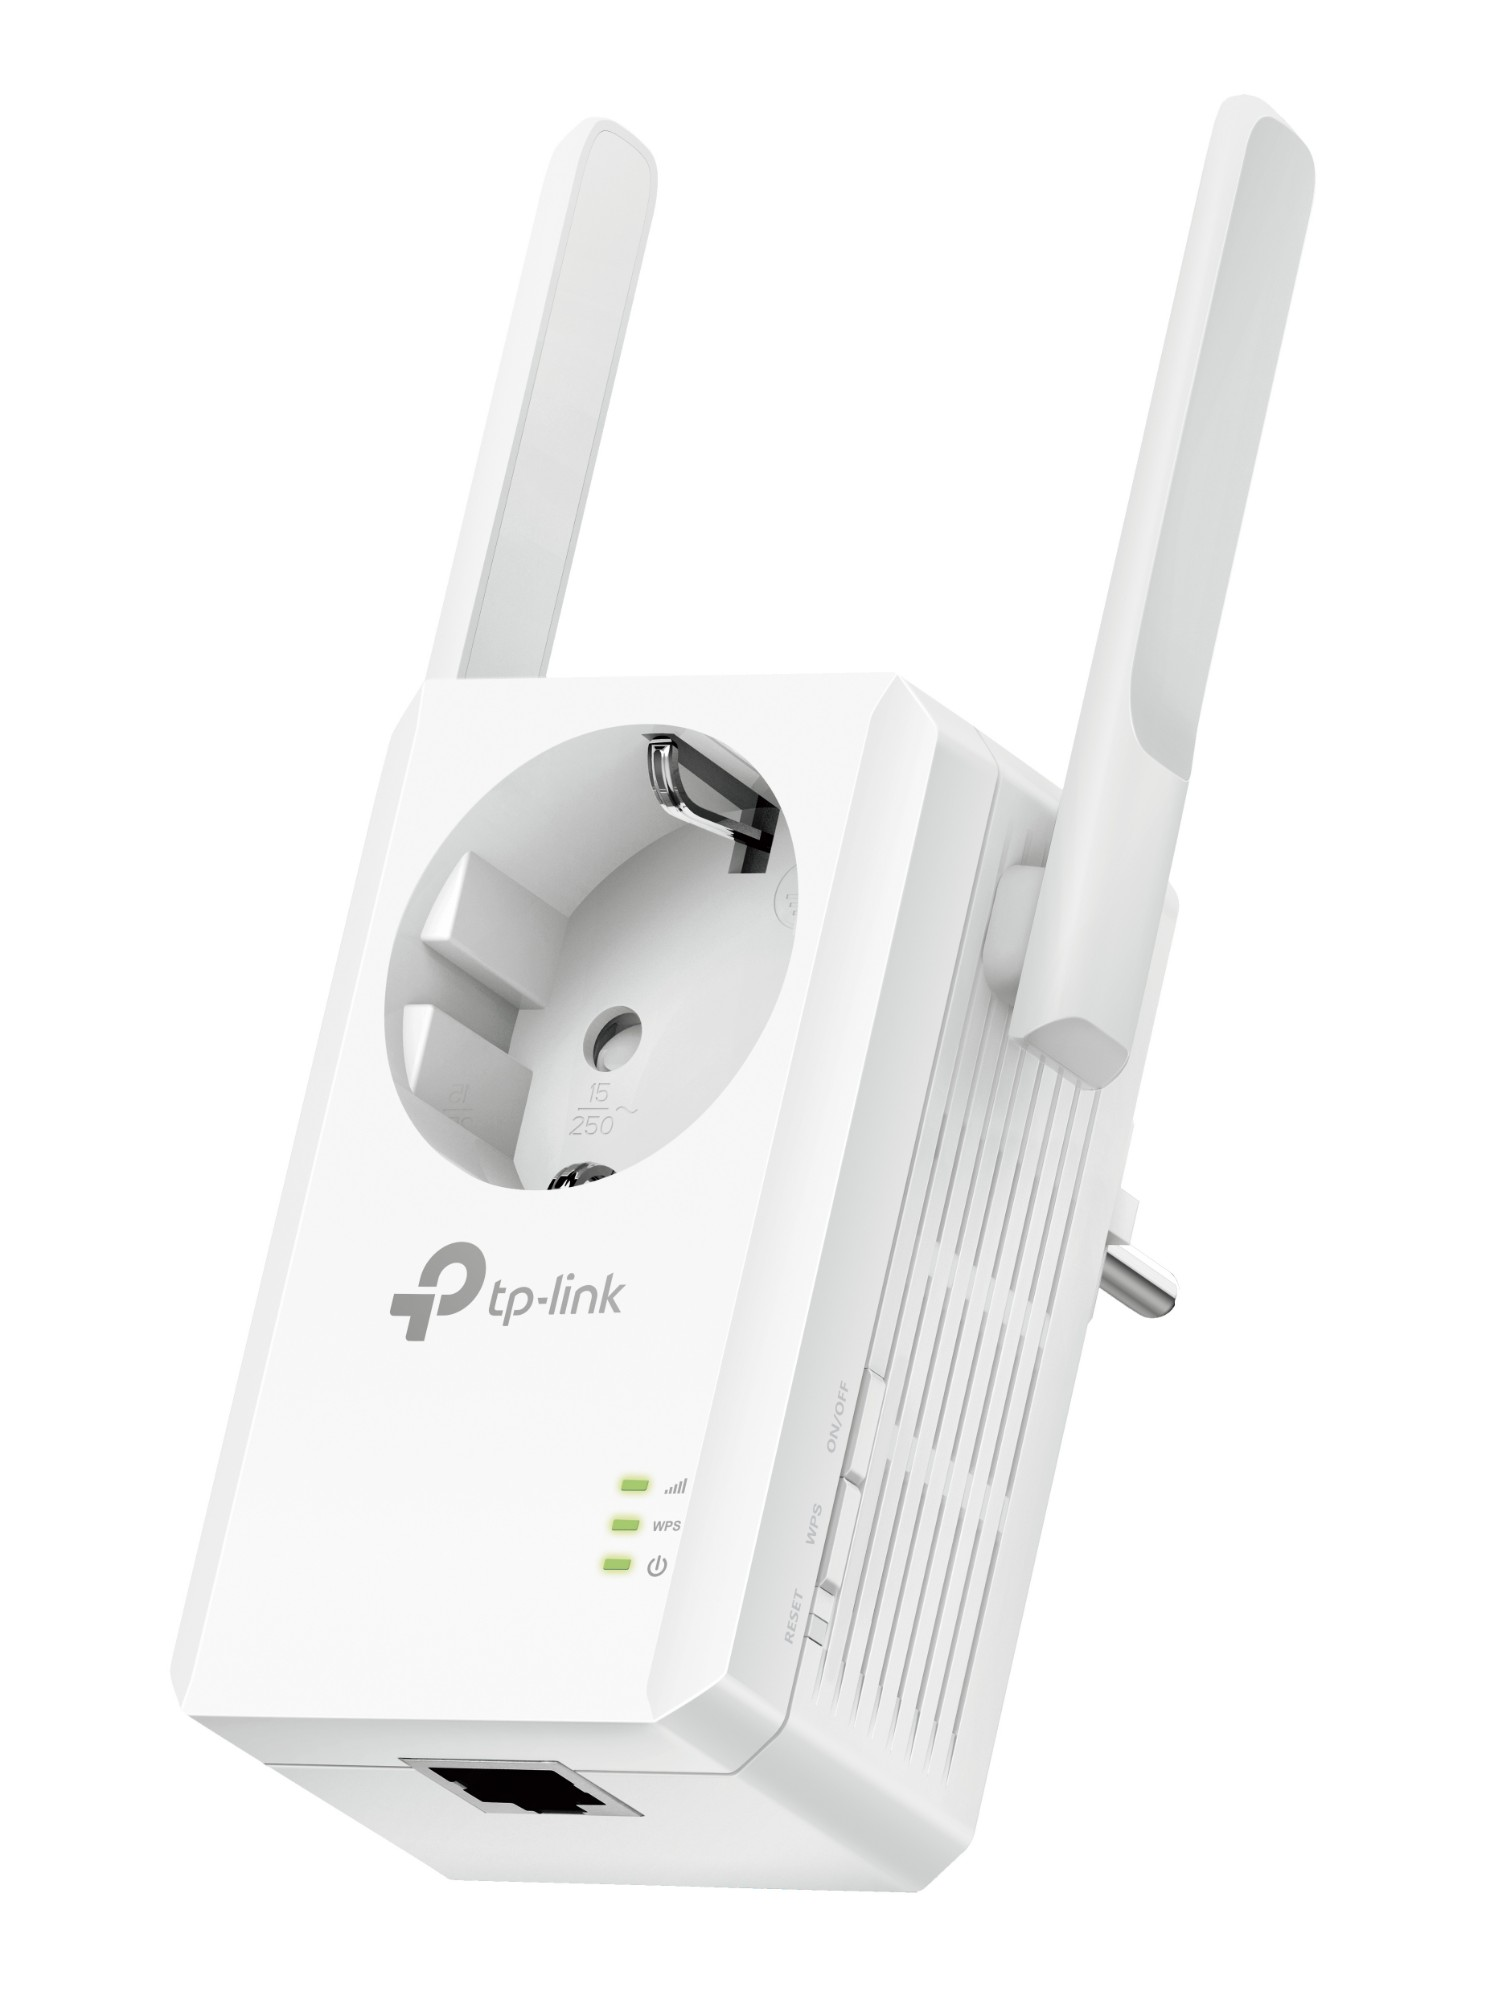 TP-LINK TL-WA860RE network extender Network repeater White